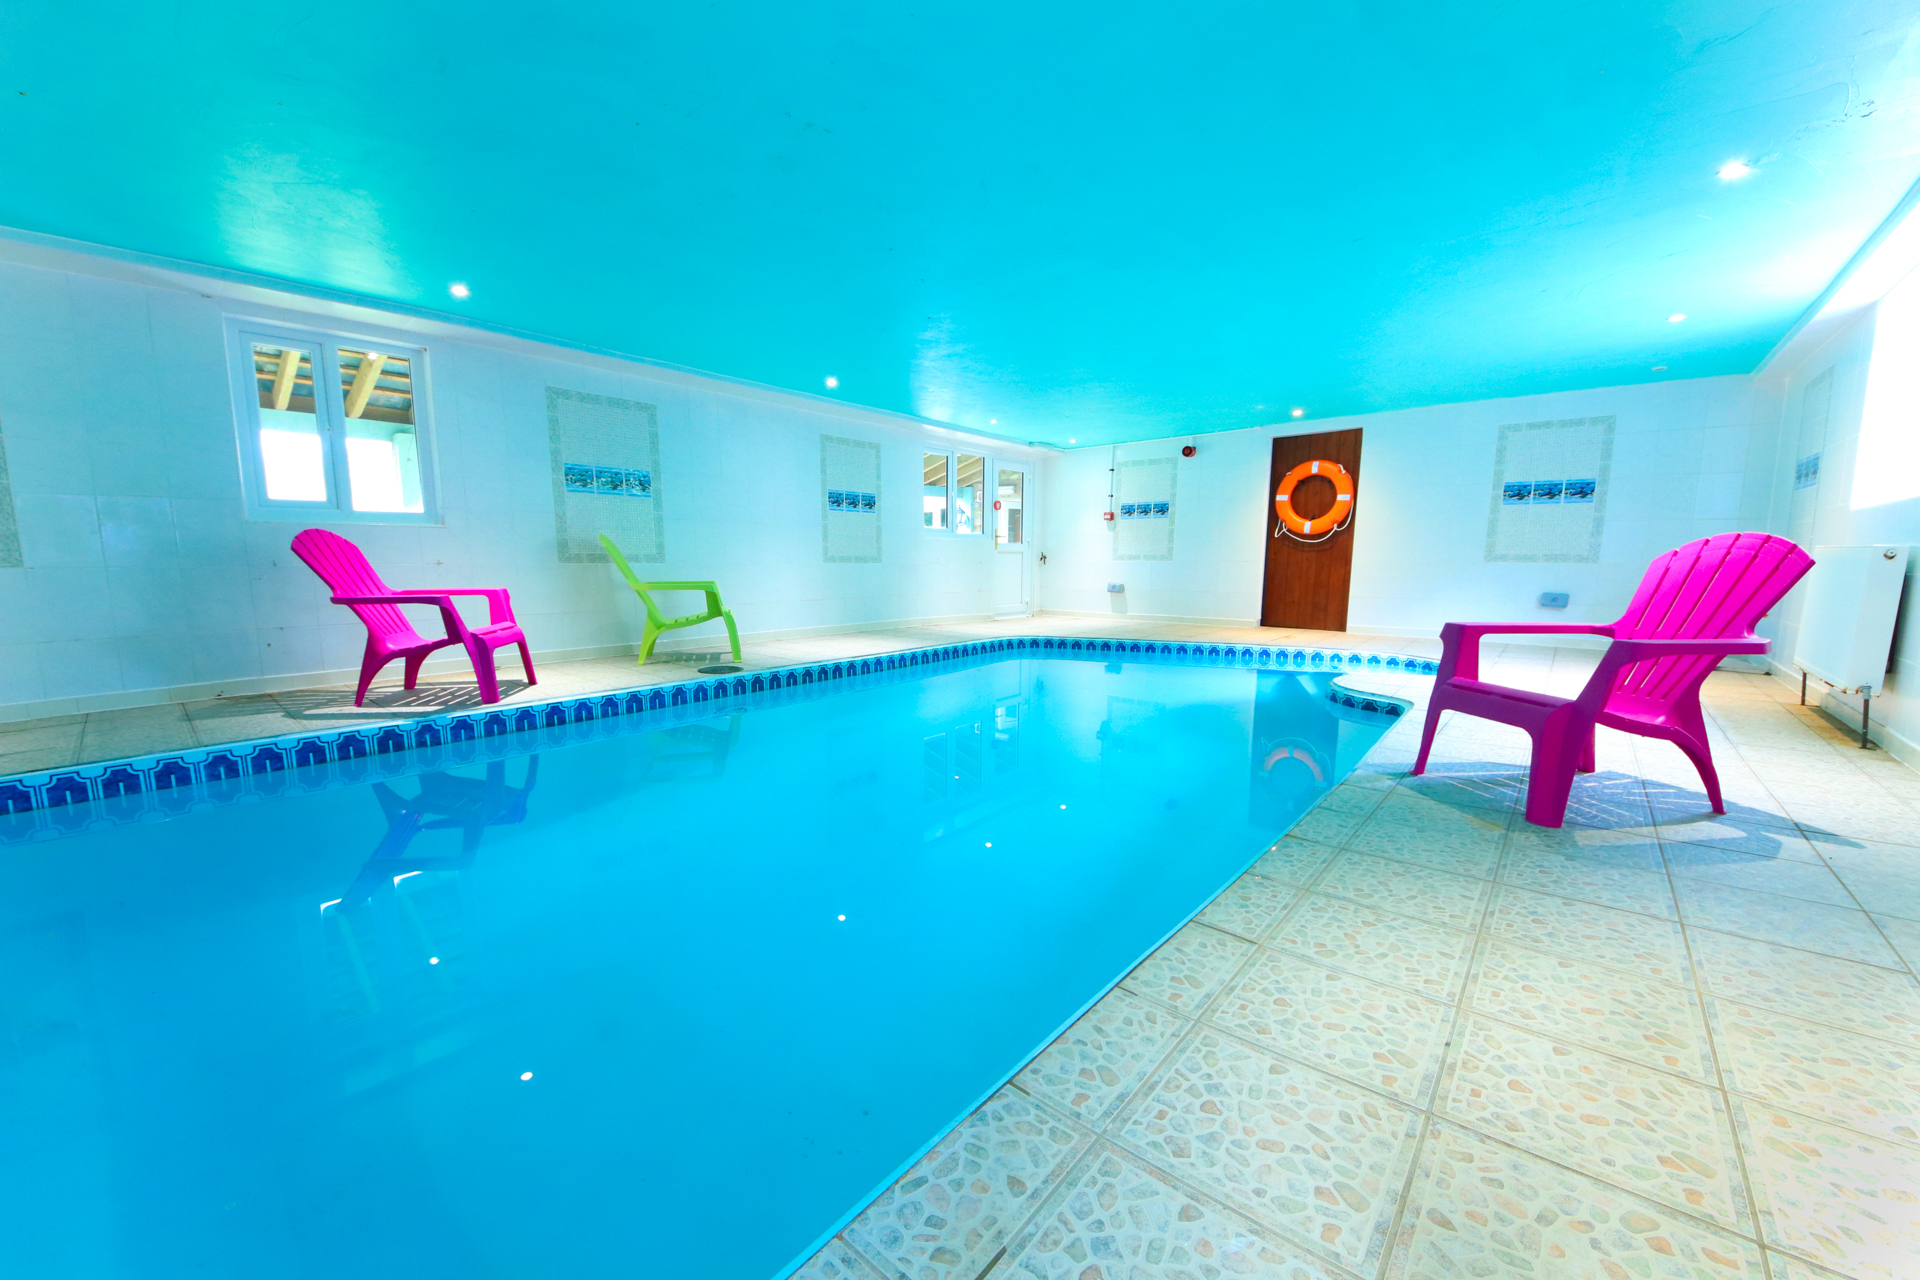 Holiday accommodation + swimming pool  in East Devon, South West, West Country